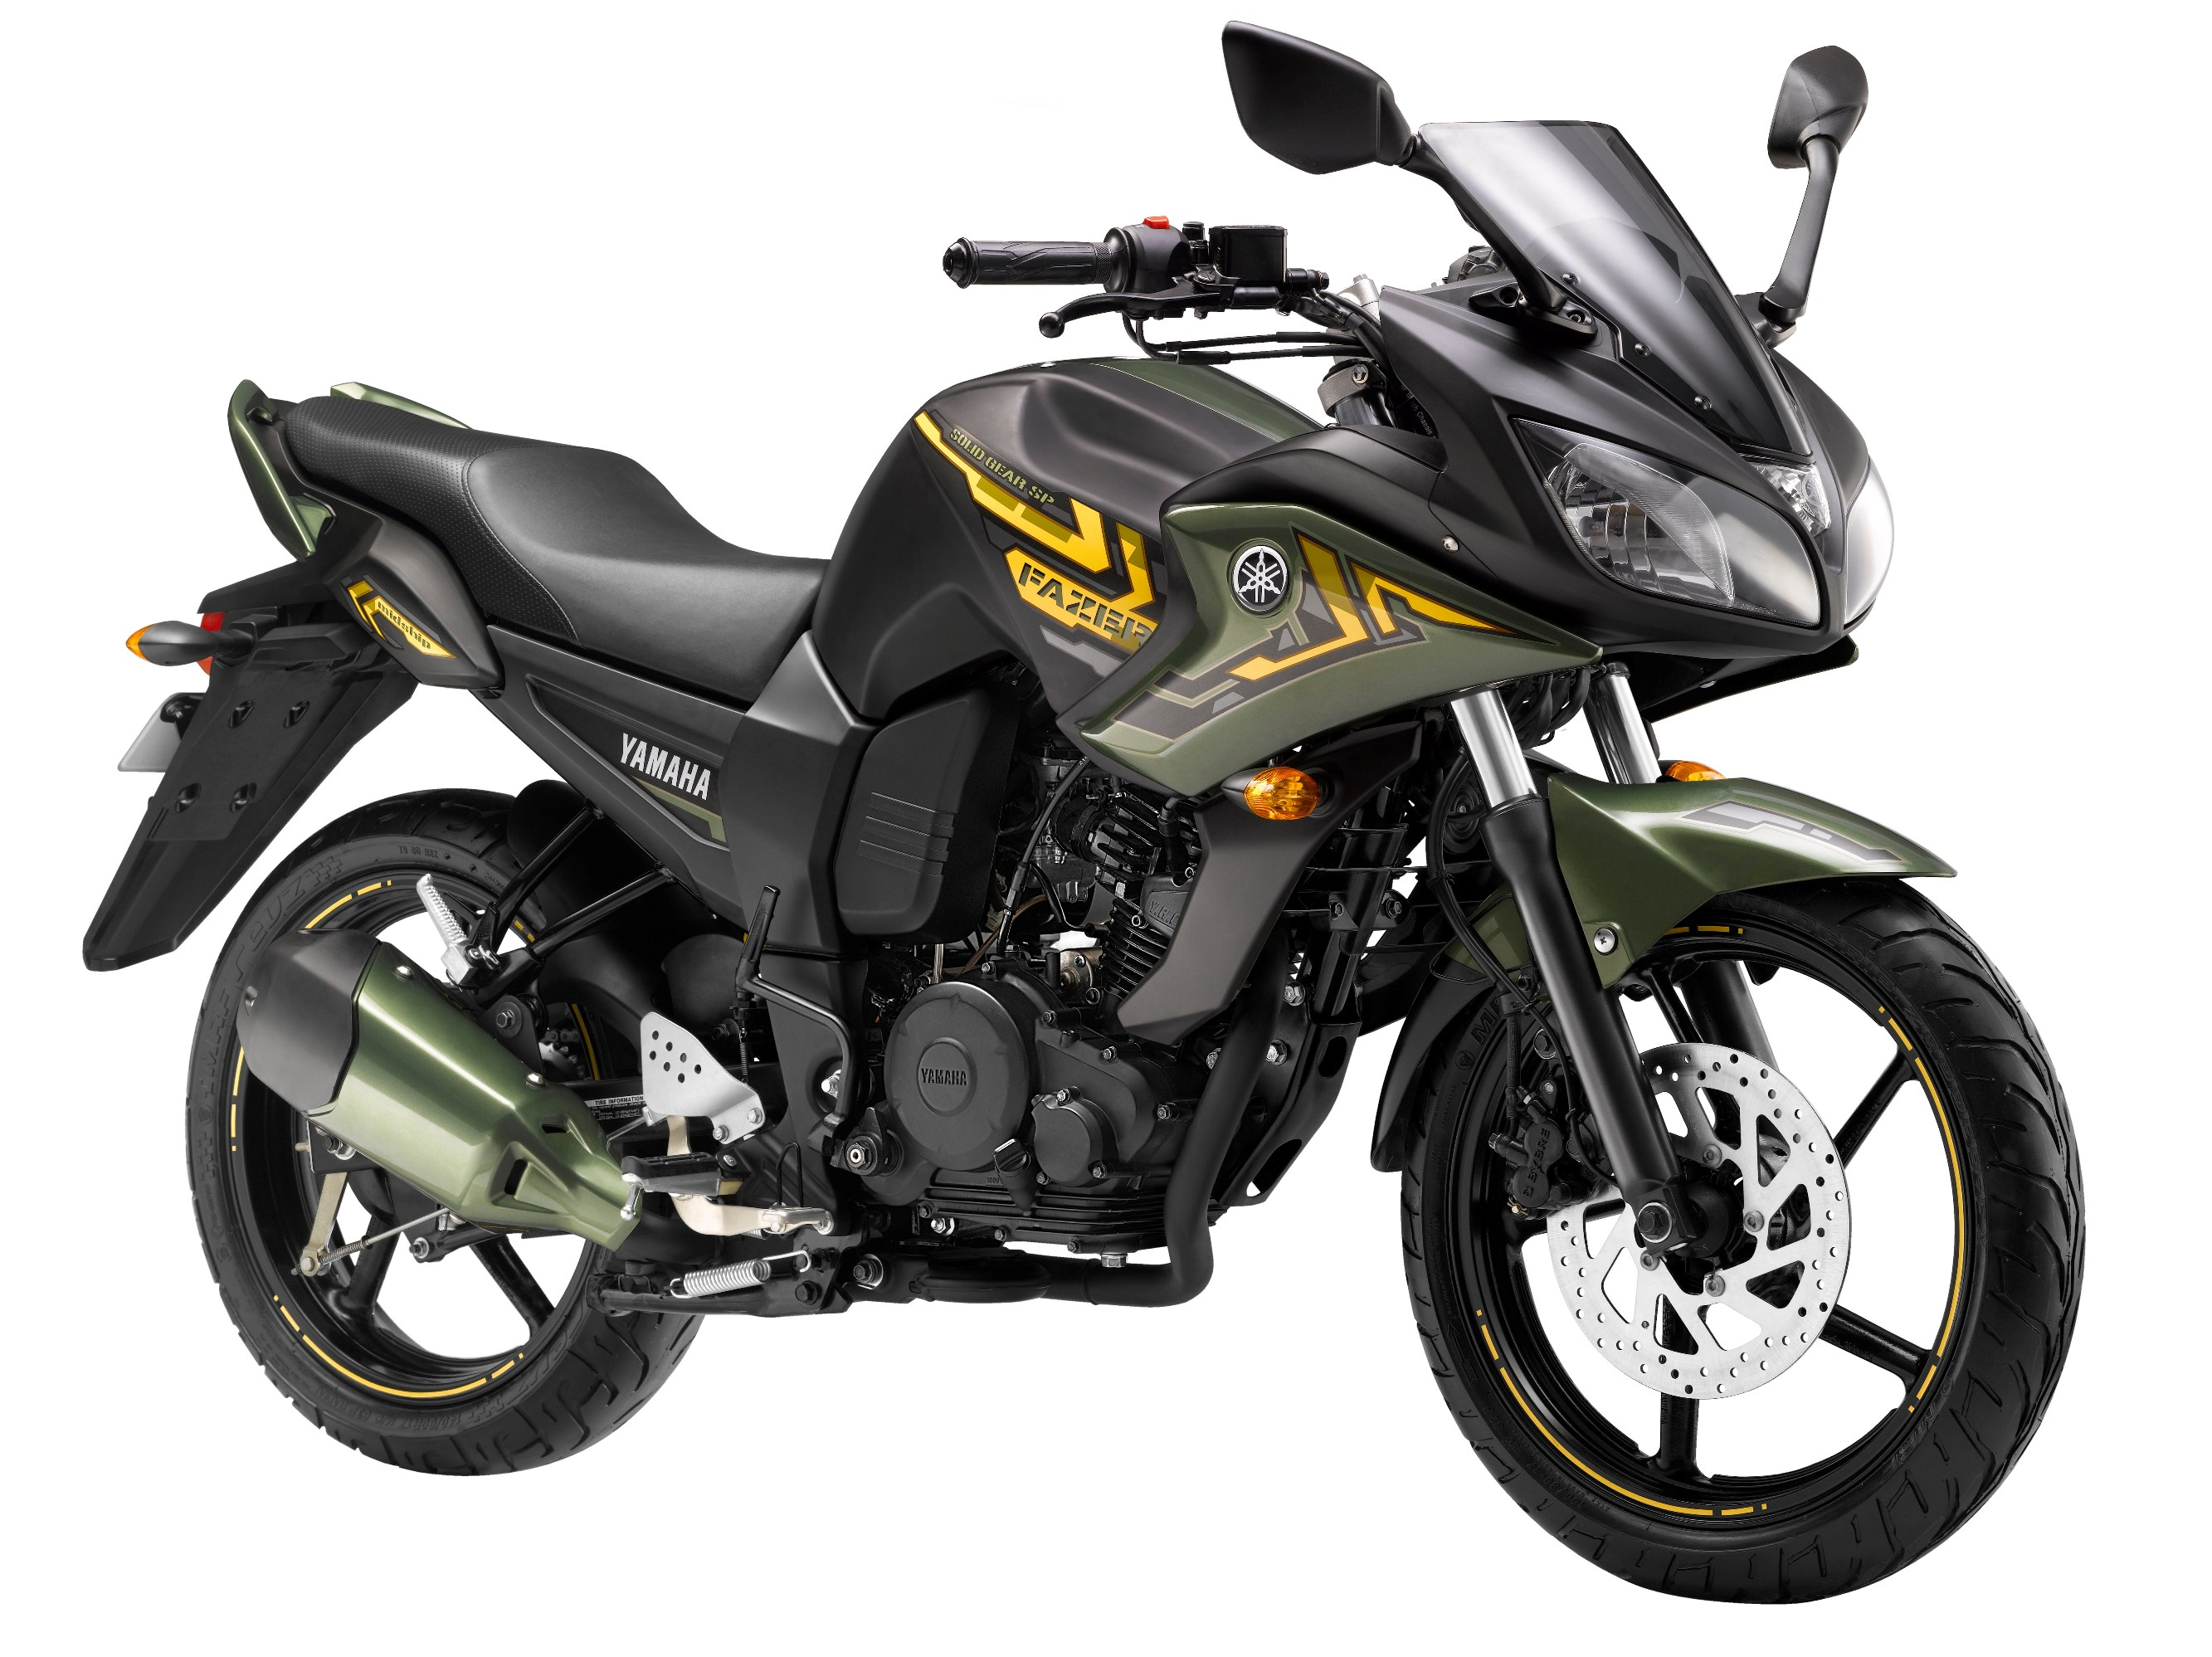 New fz Bike Photos Image 1 of 4